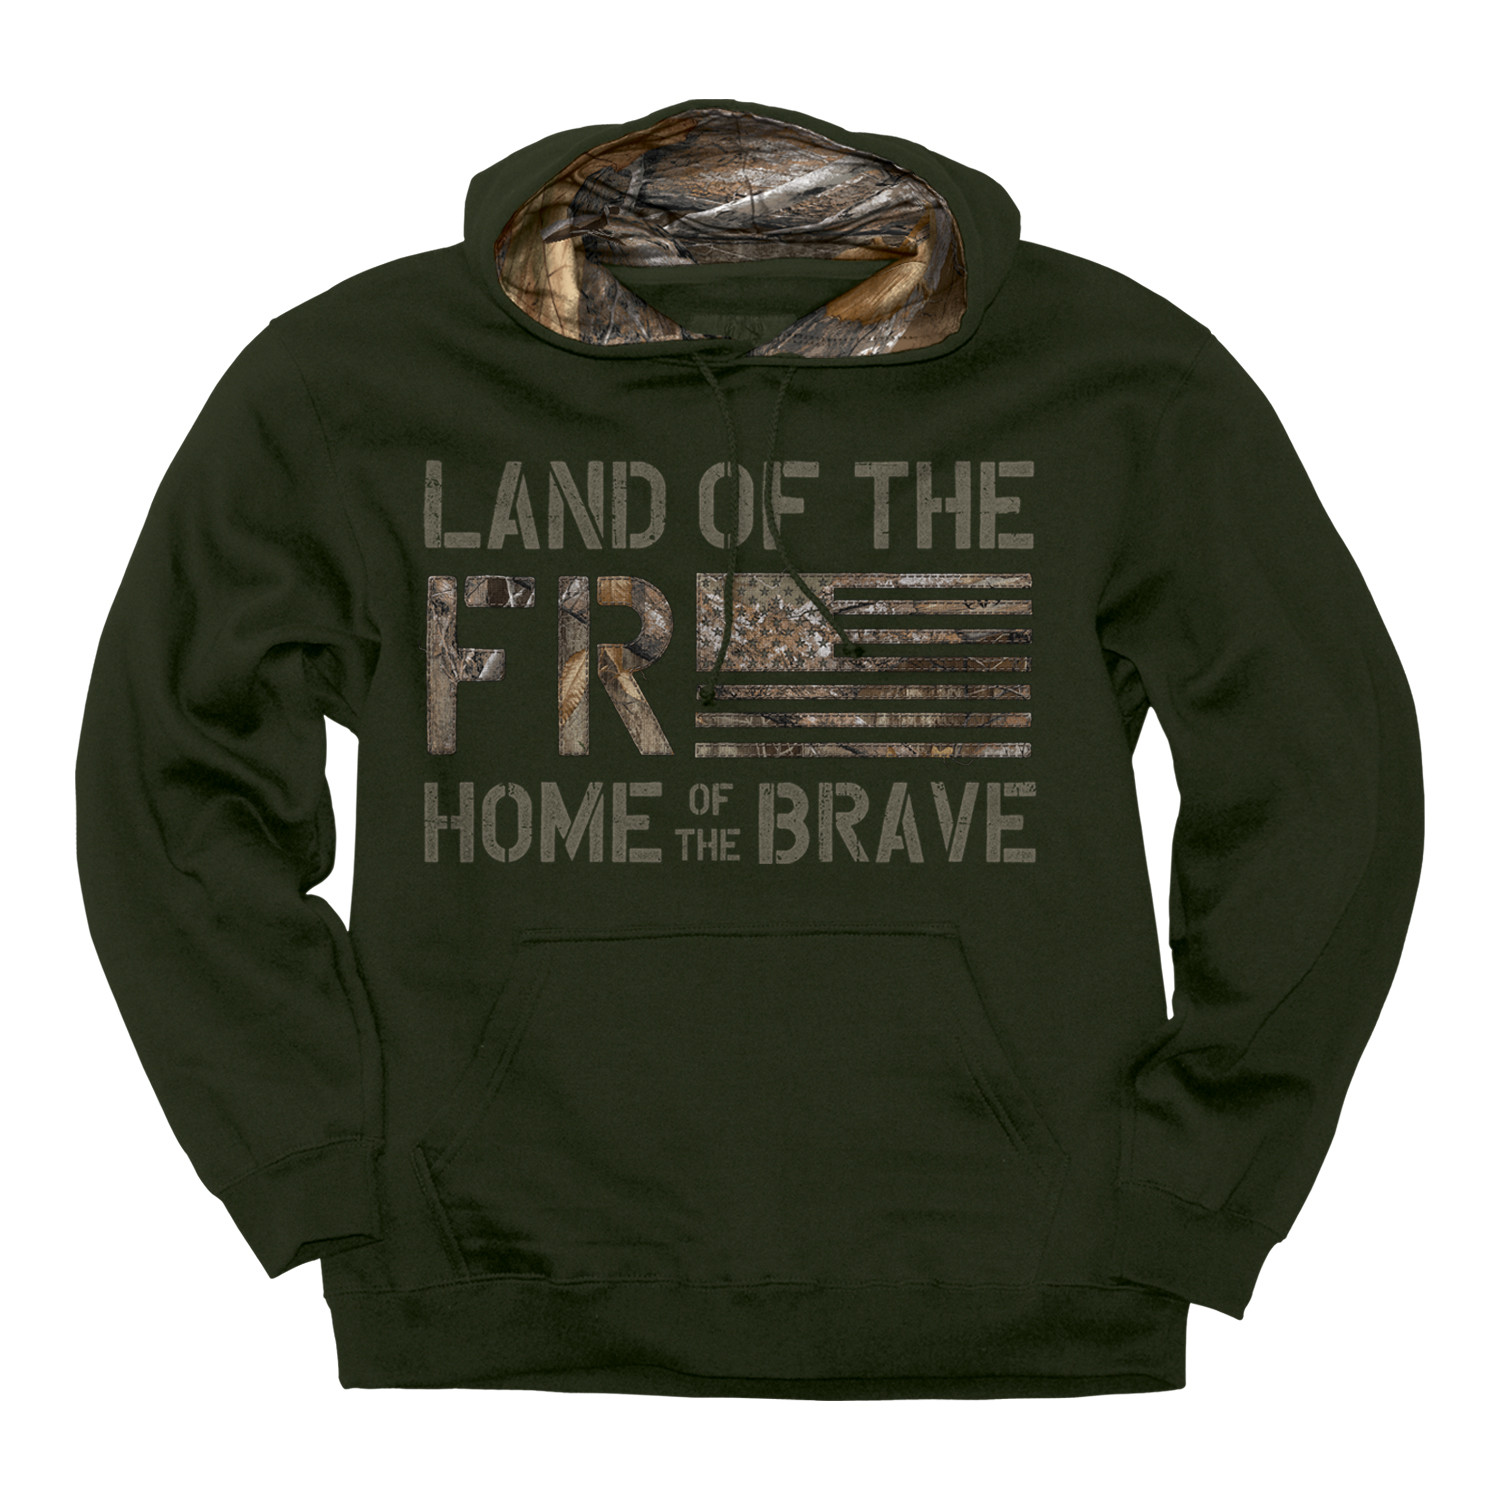 Front of Hoodie